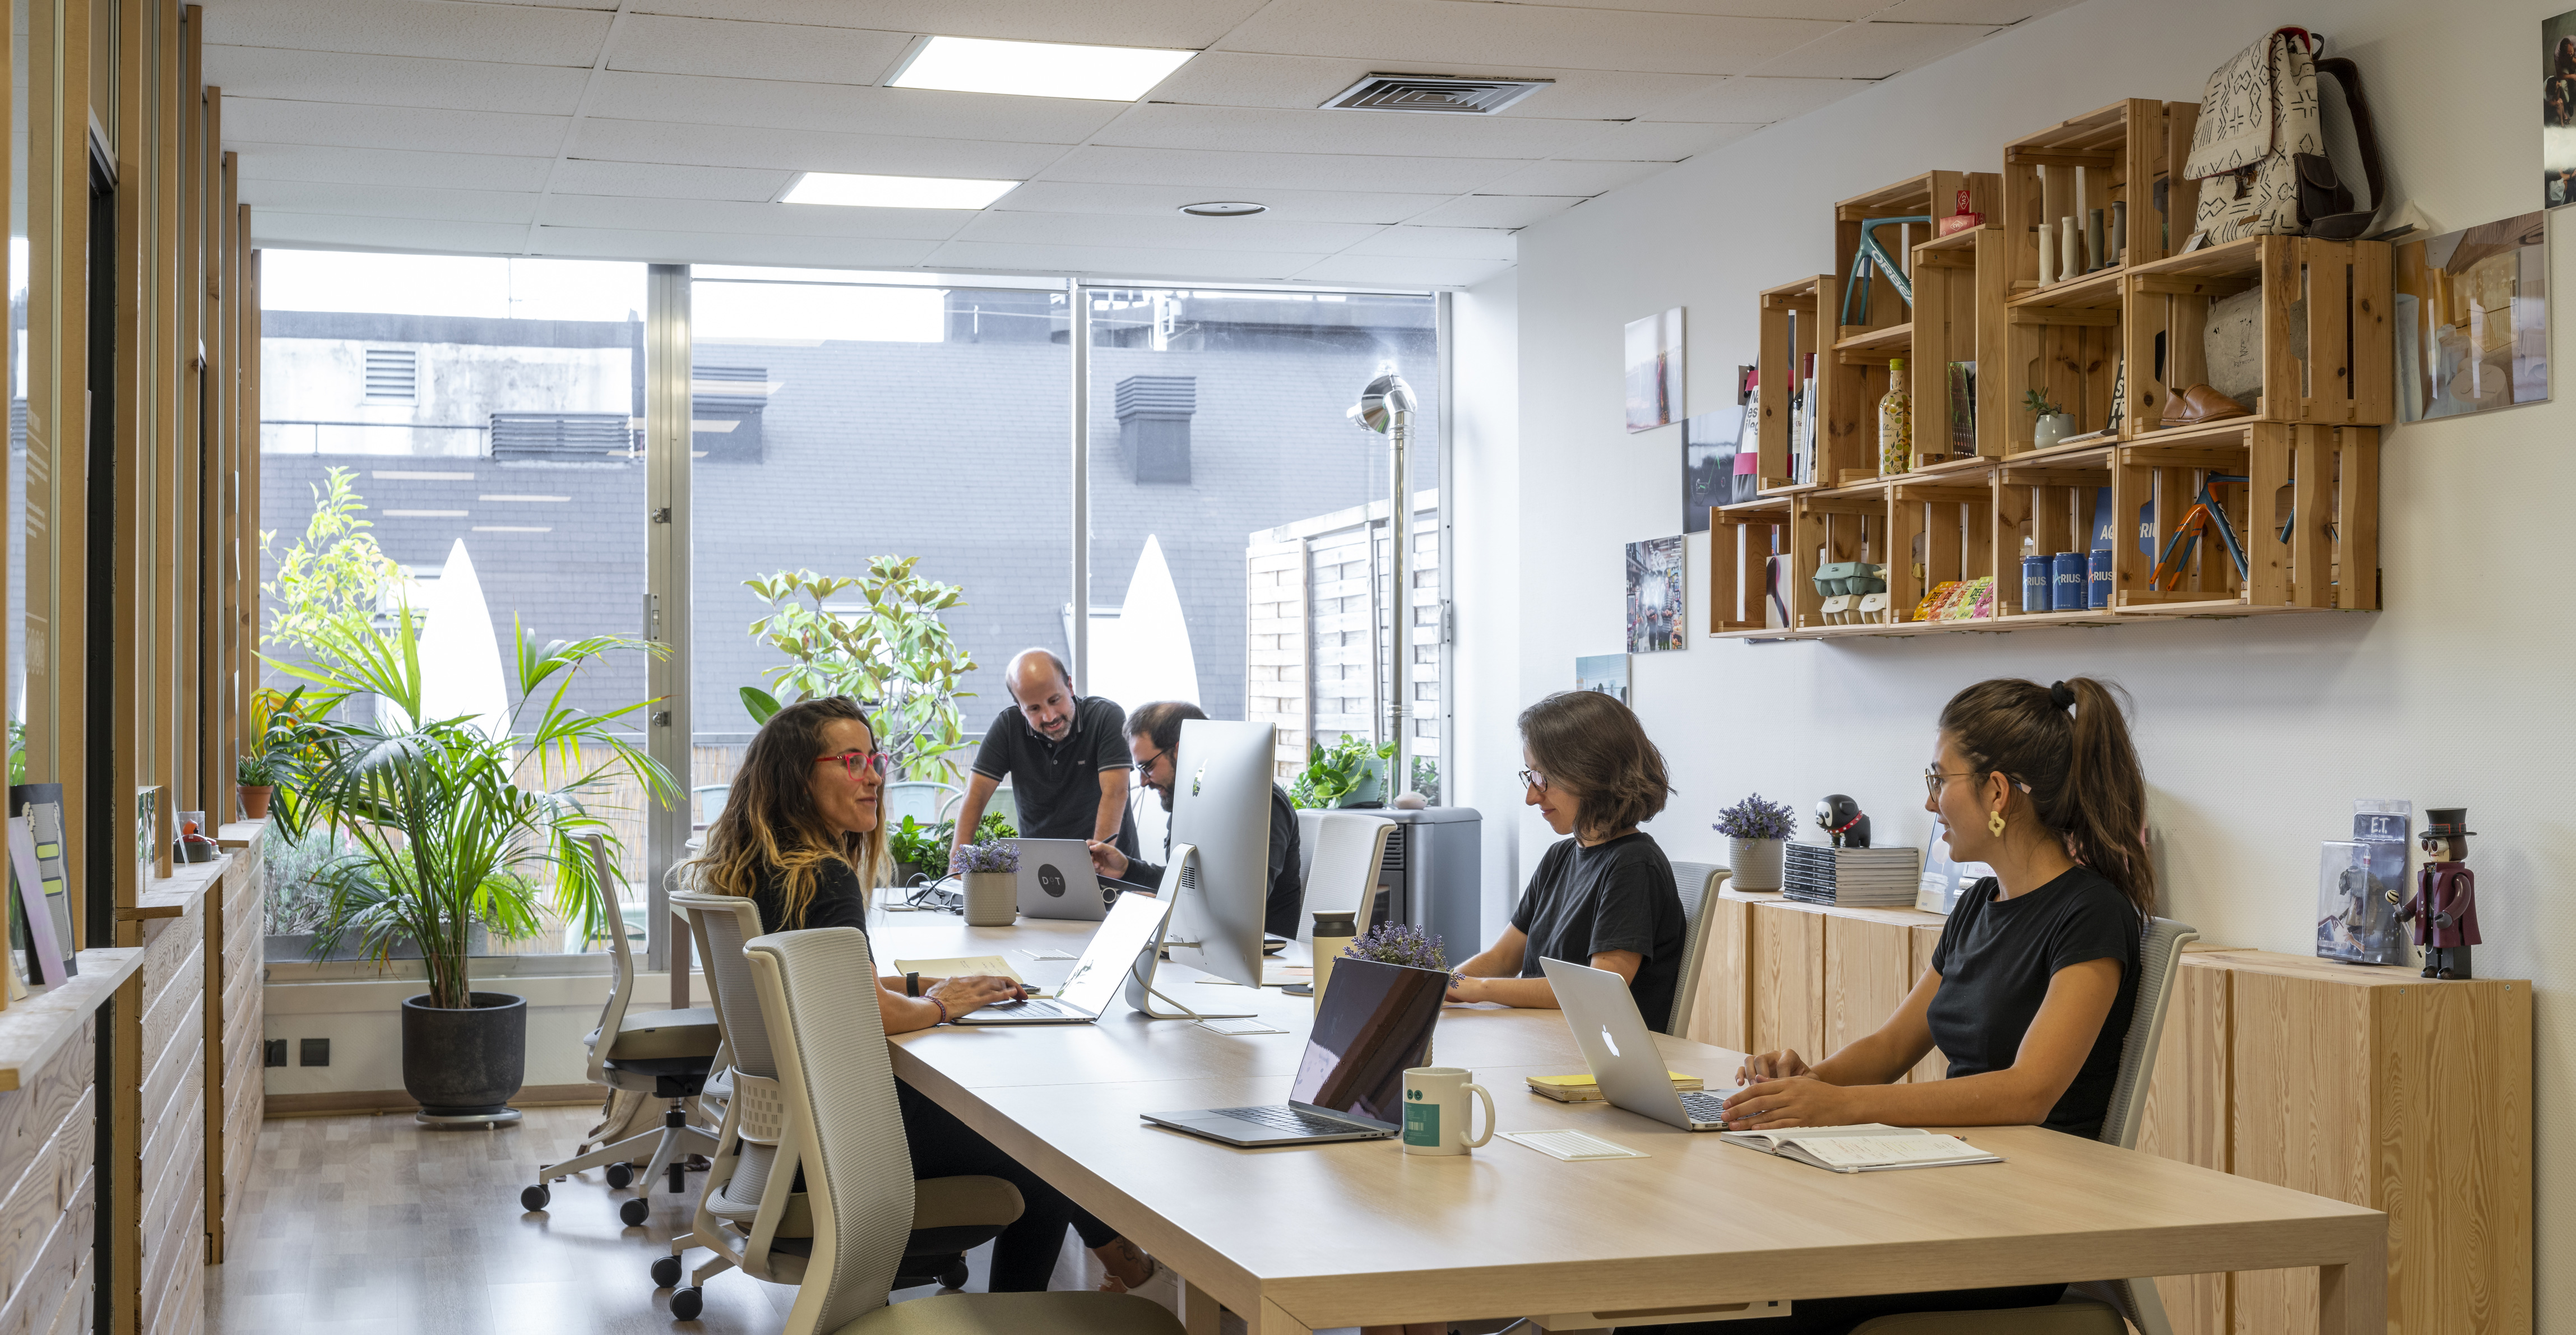 Open space 2- DOT- design - strategy - product - office - workspace - innovation - headquarters - Bilbao